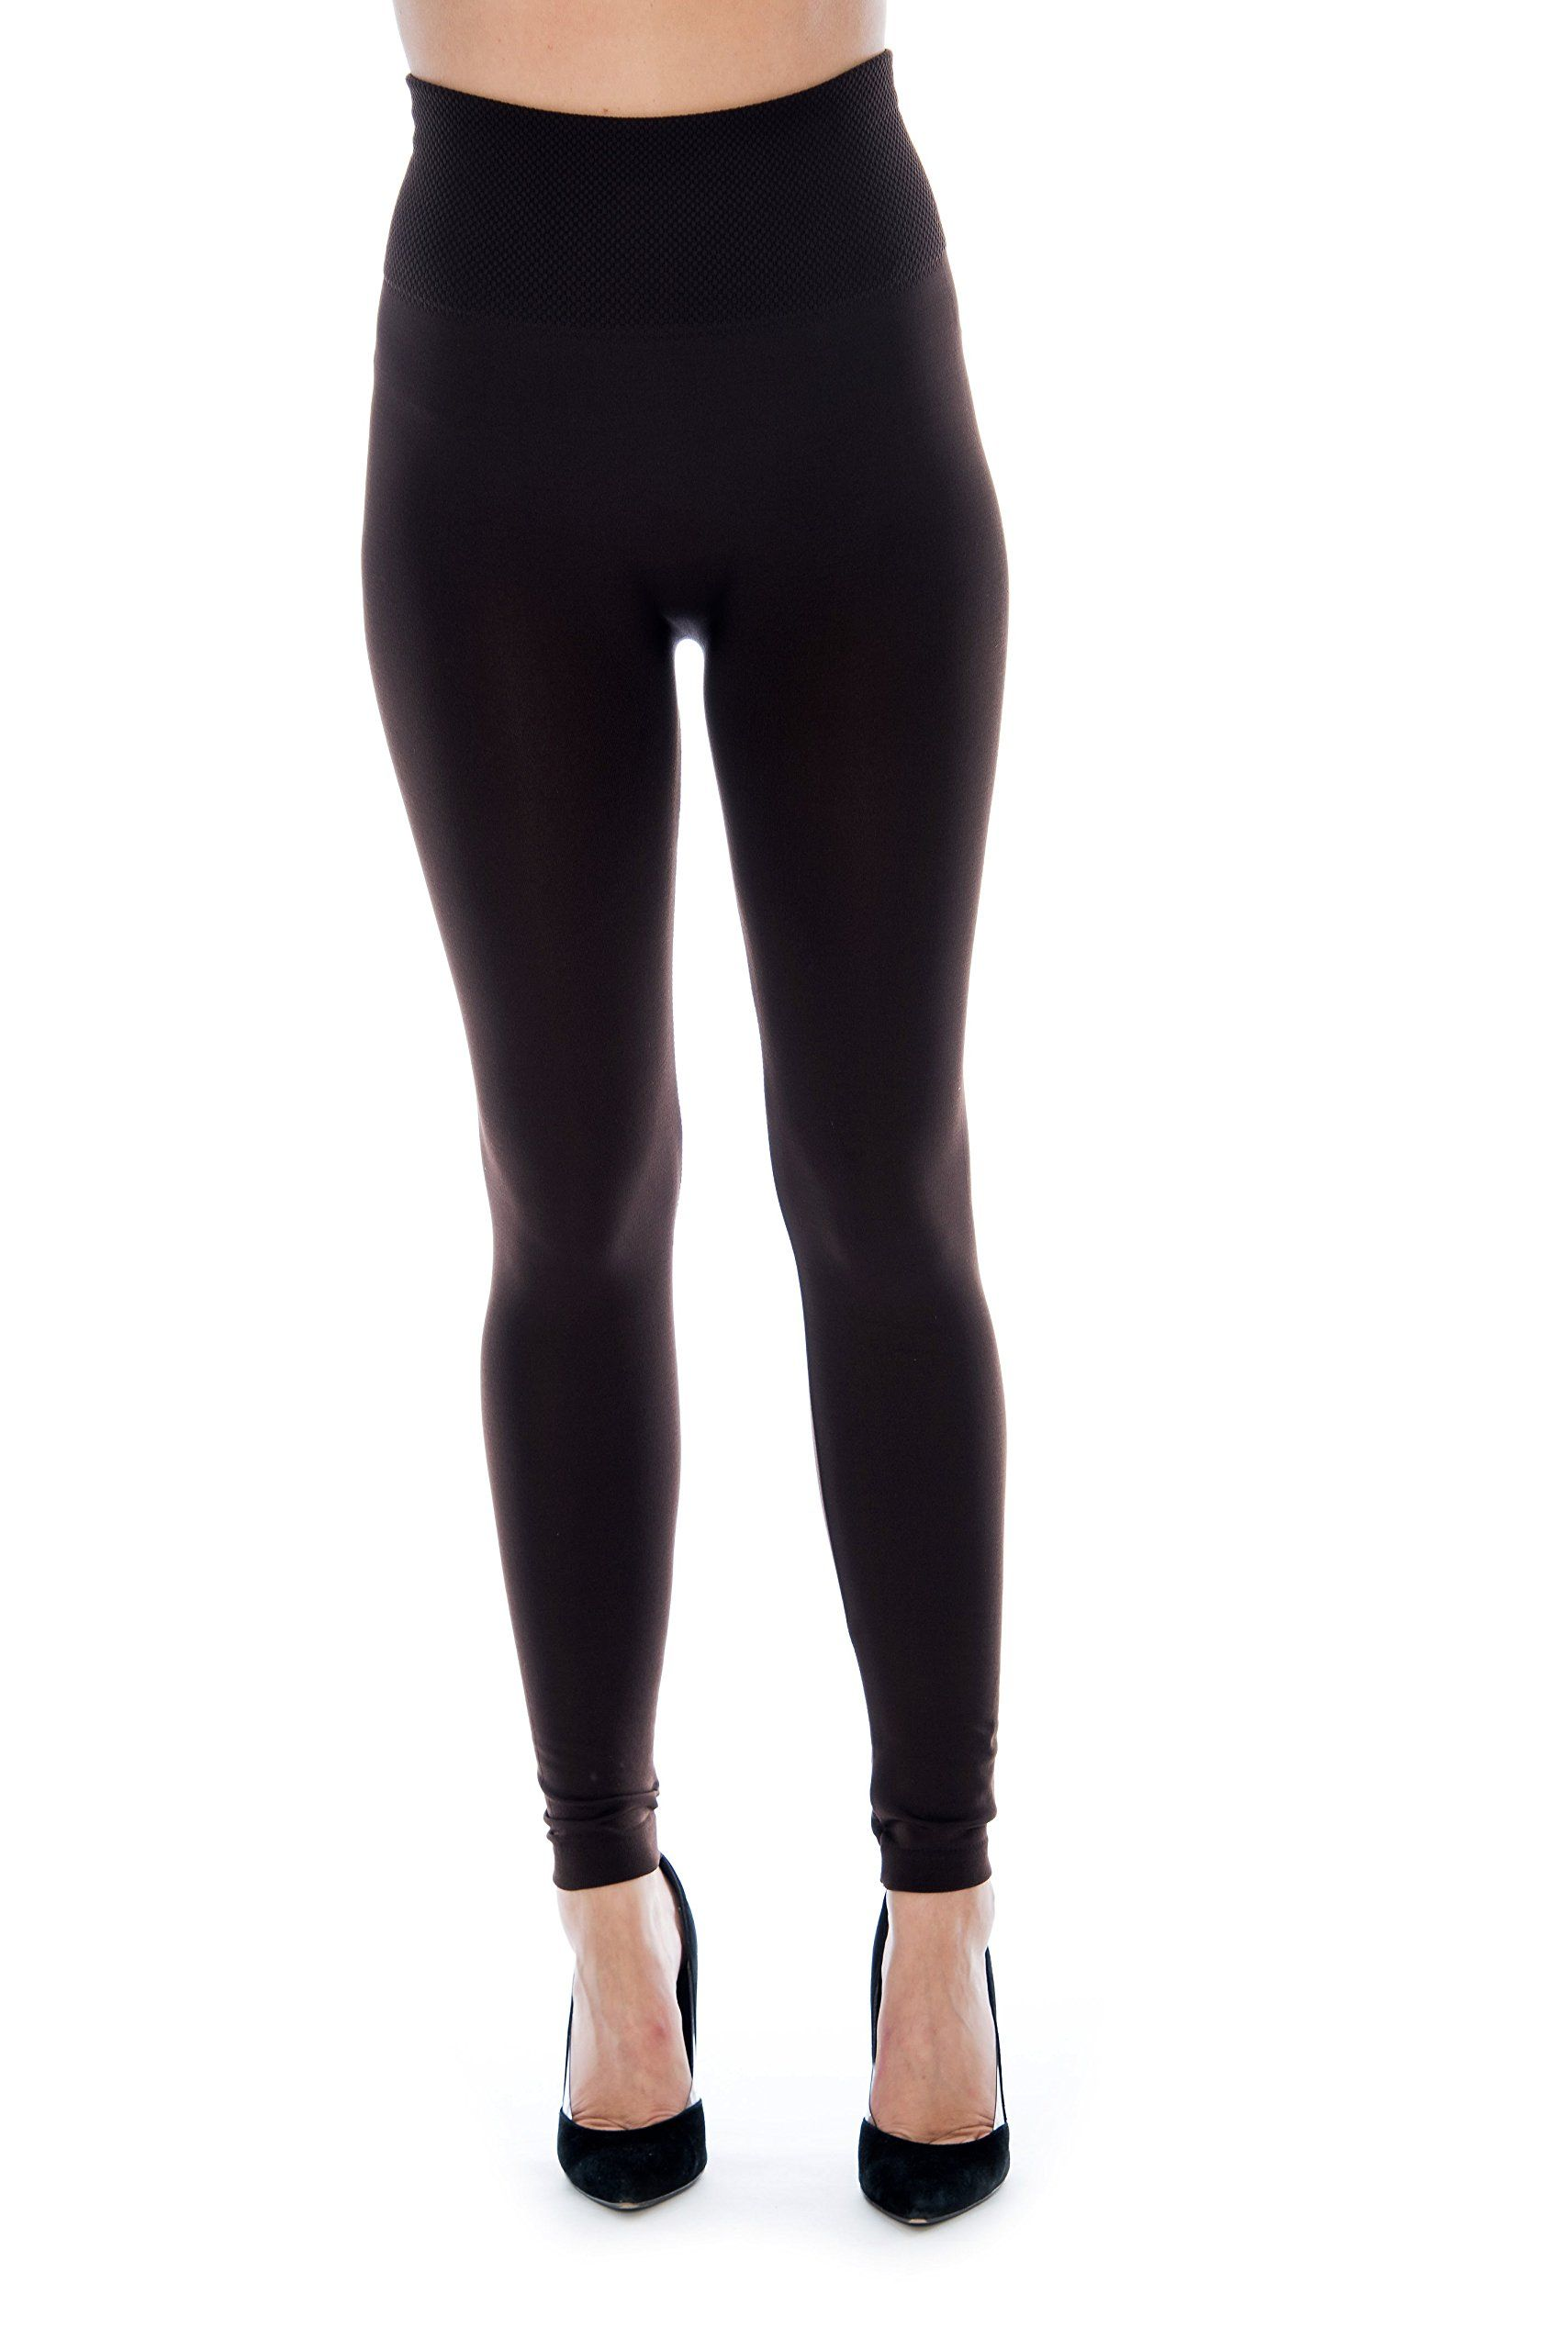 cff8b075e9f906 Unique Styles Fleece Lined Leggings for Women One Size and Plus Size Packs One  Size Fits Most 4PK: High Waist: Black Brown Navy Charcoal >>> For more ...